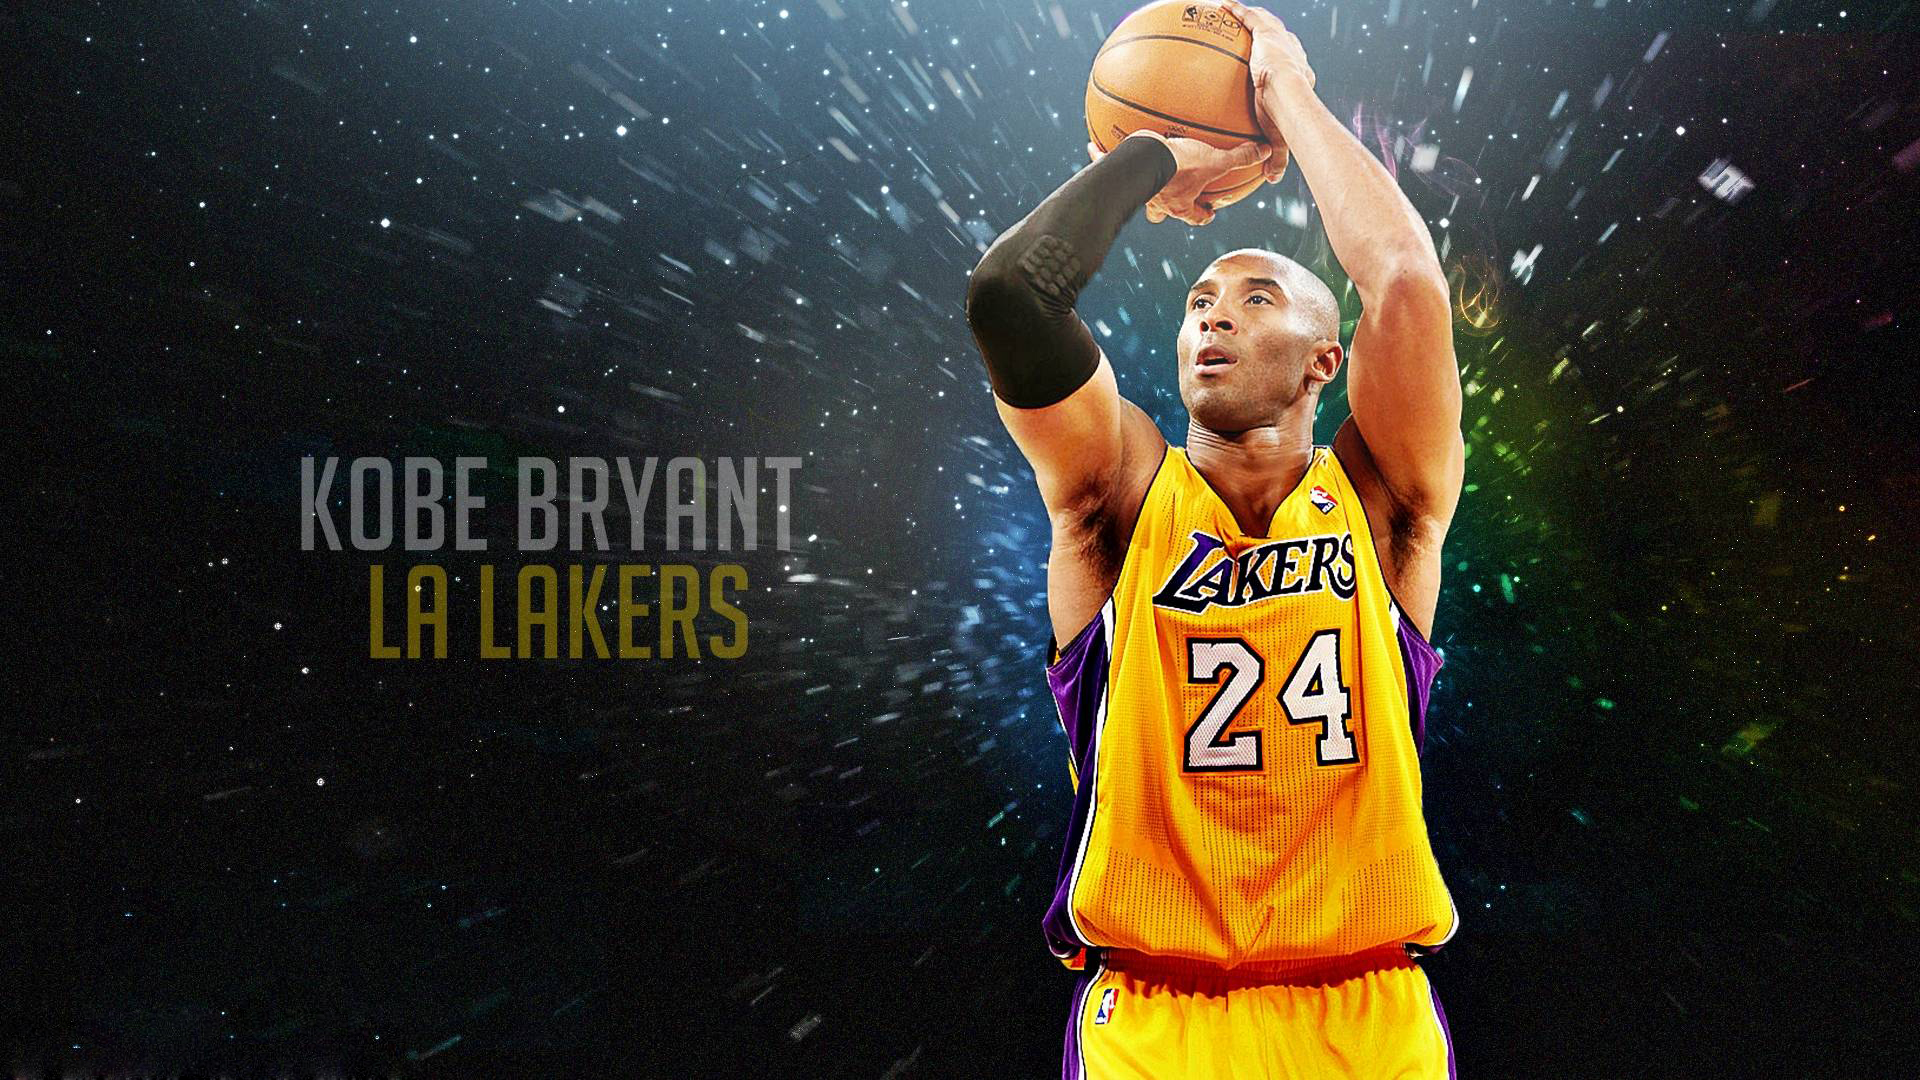 Free Kobe Bryant Wallpaper Basketball